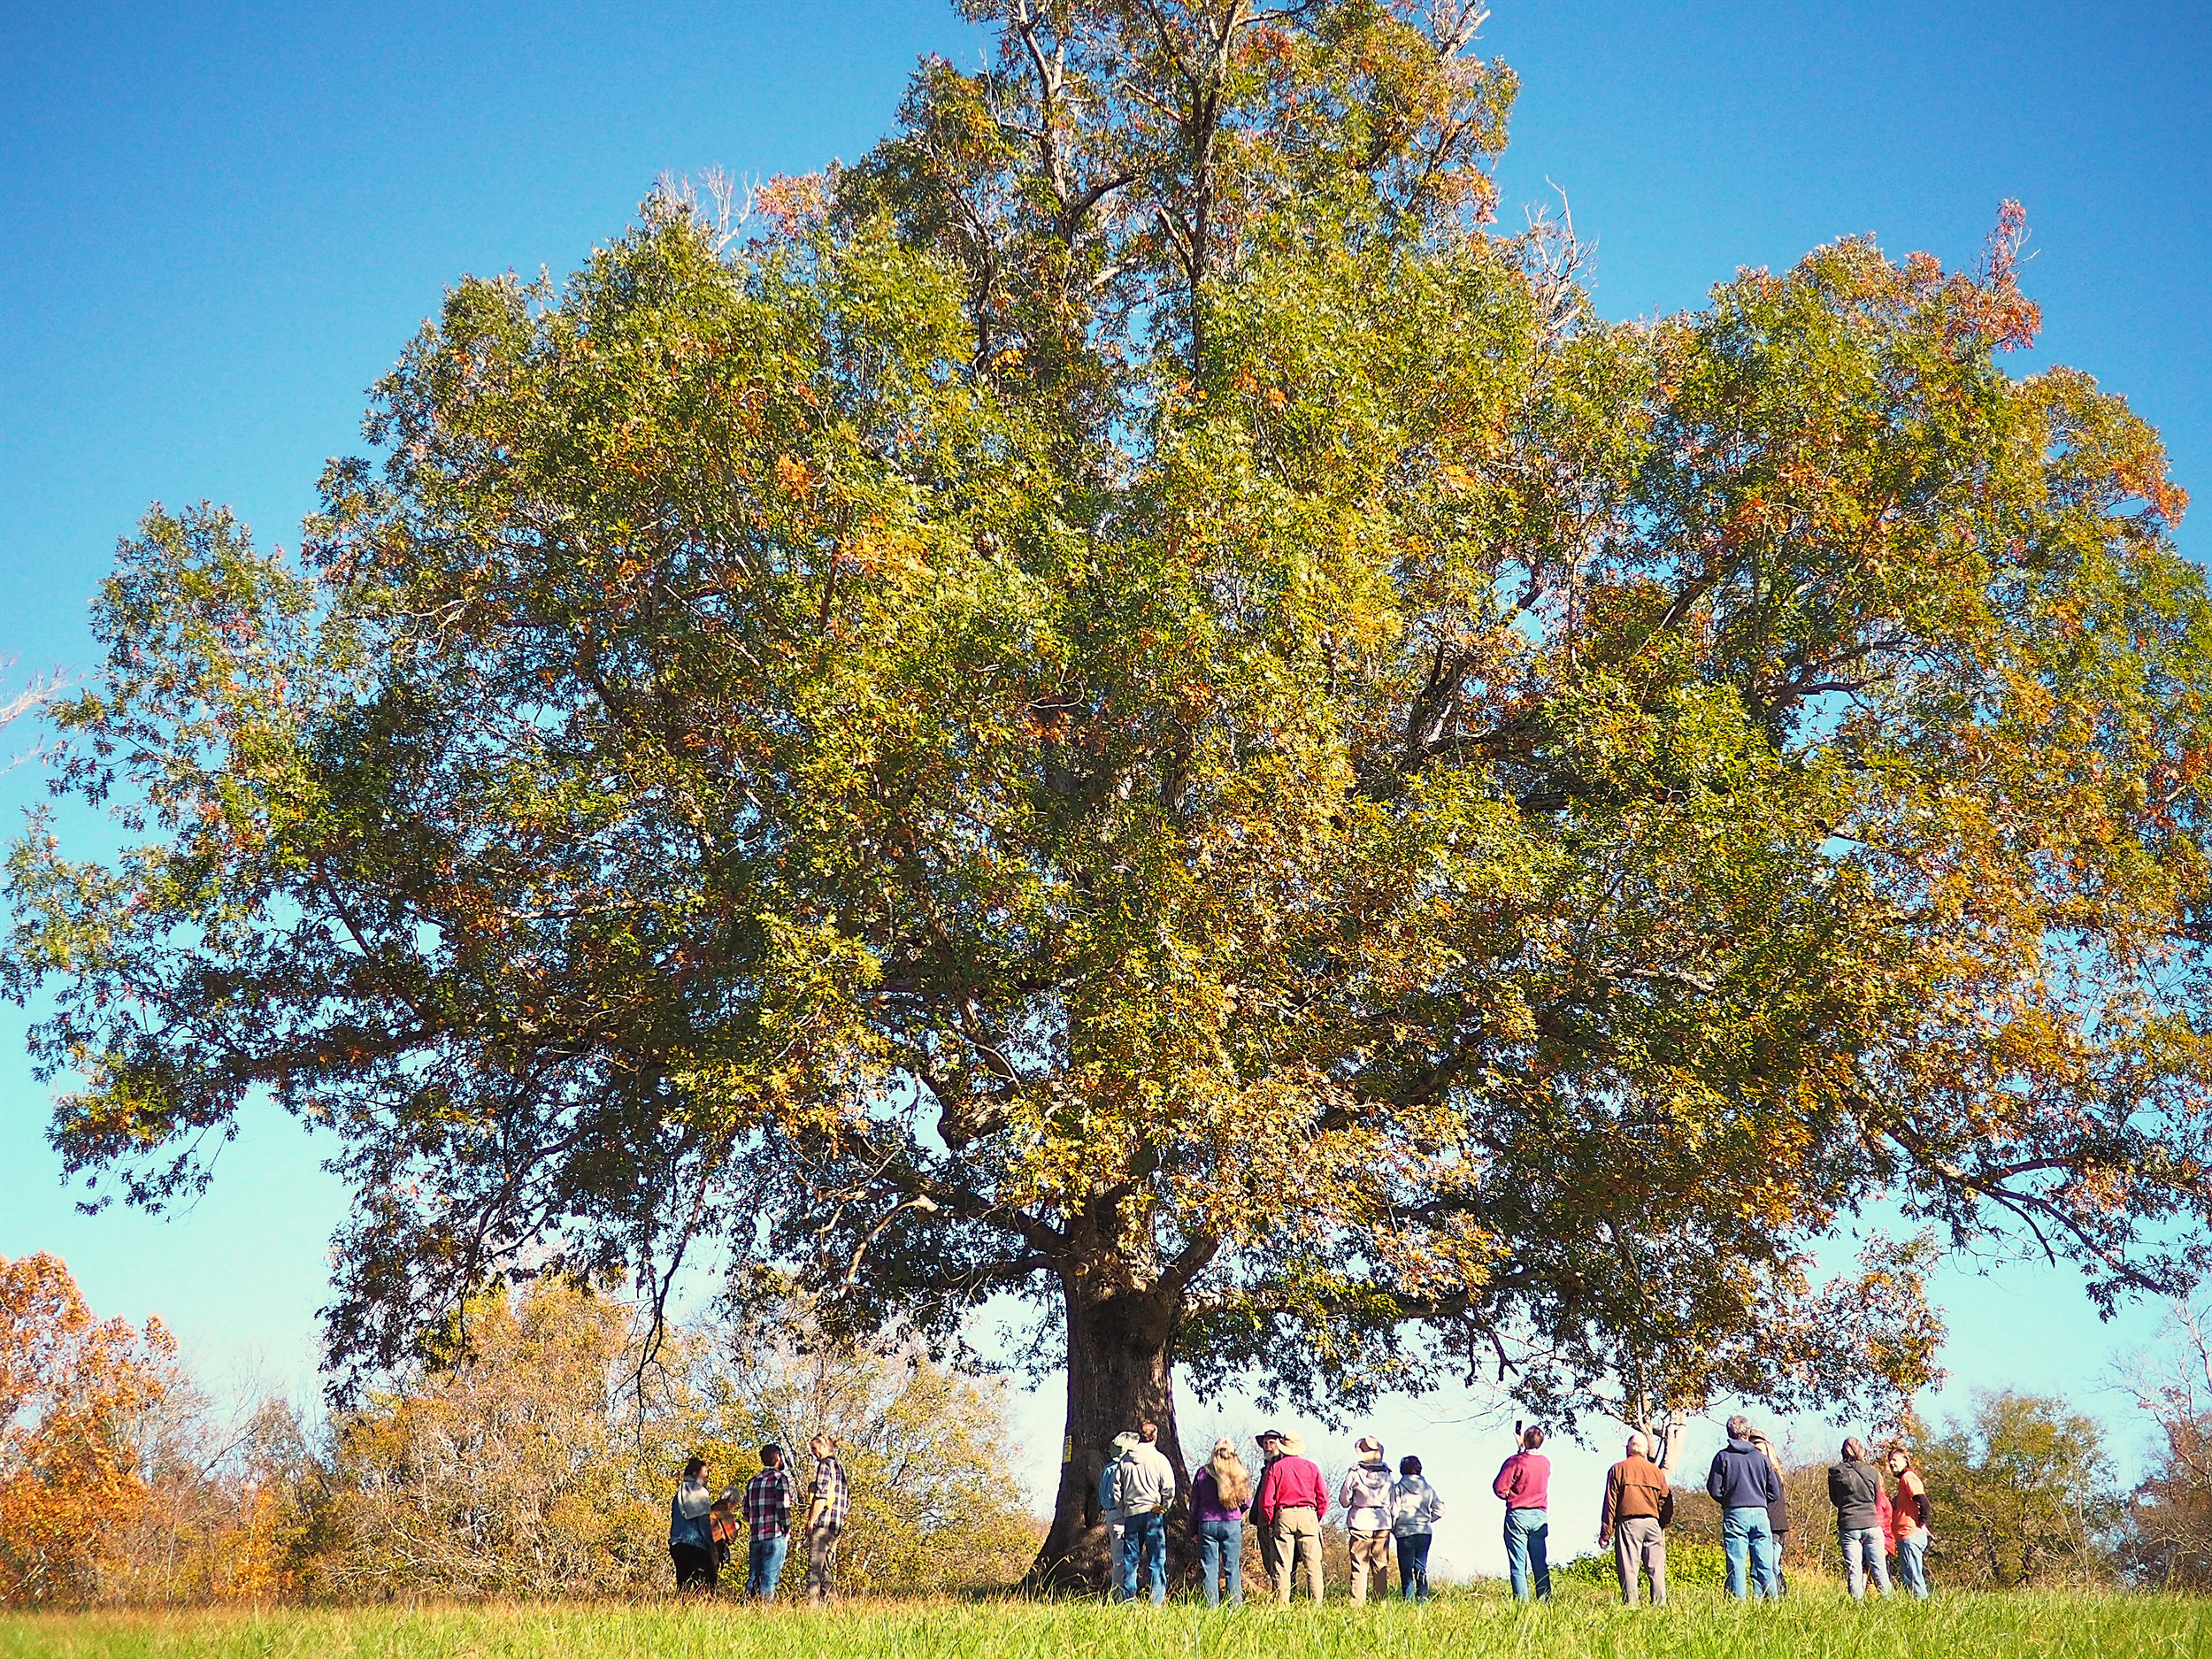 Landowner along the proposed MVP Southgate project would lose this beautiful tree if the project is approved